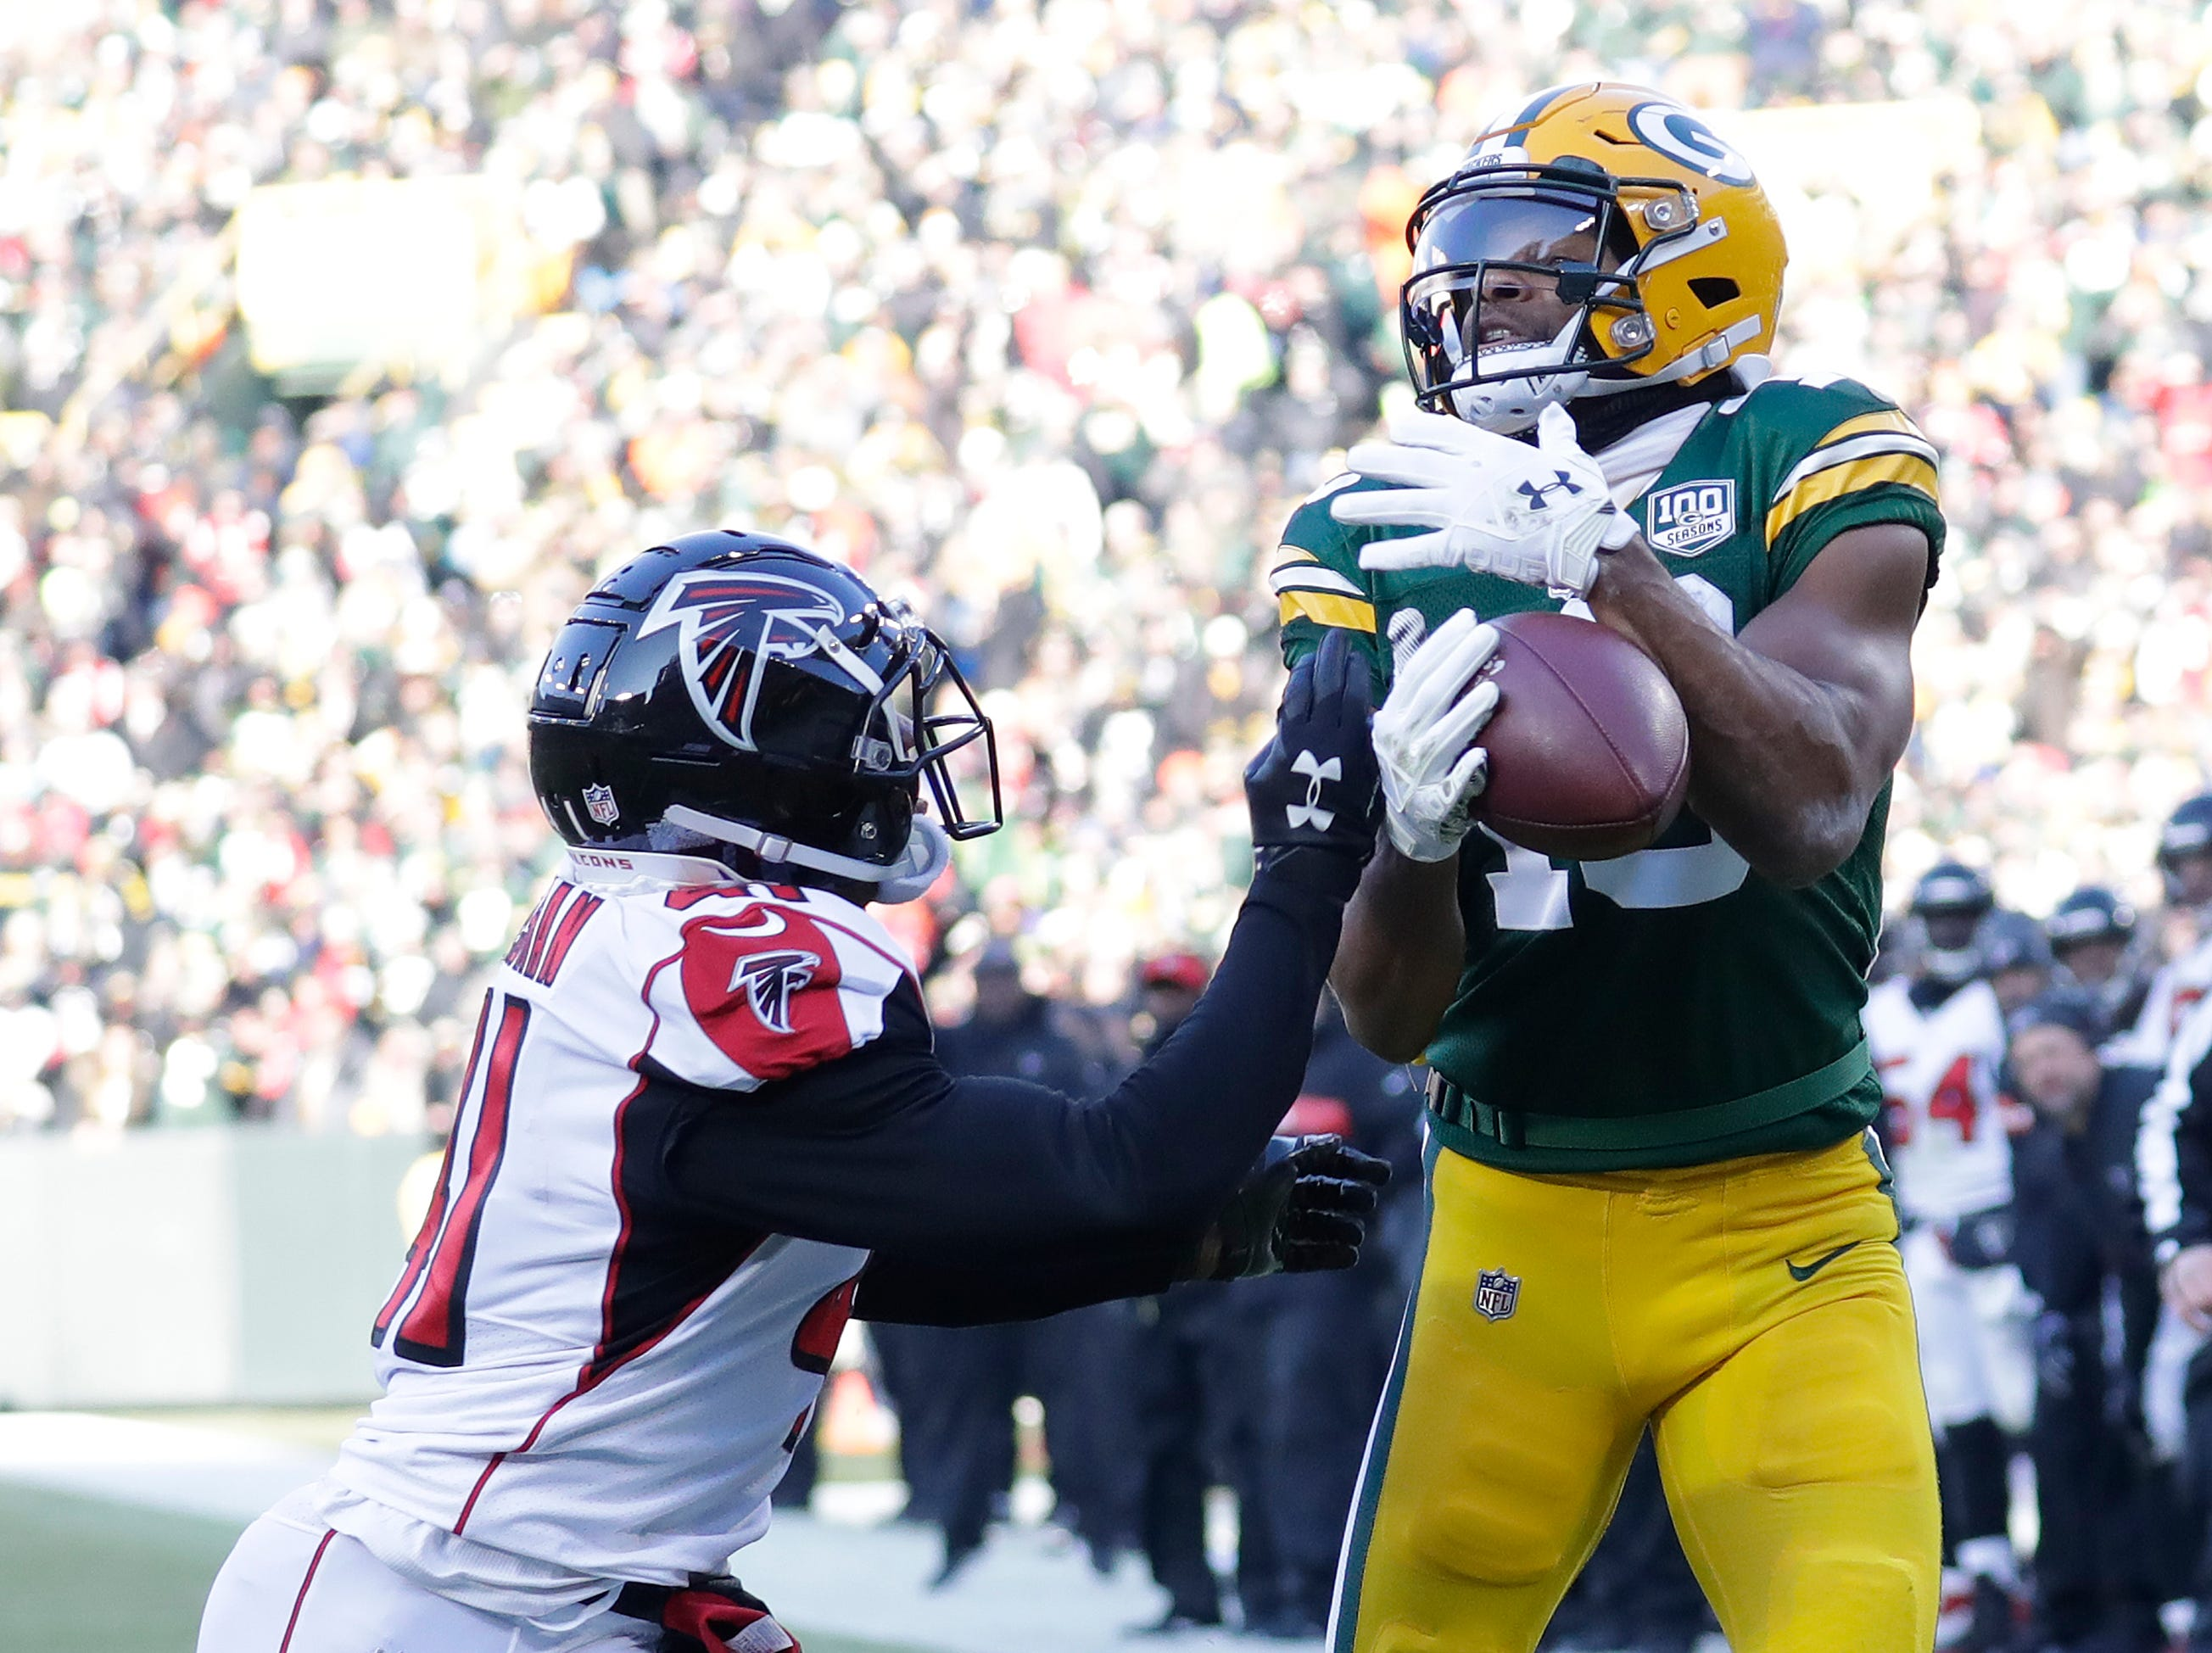 Green Bay Packers wide receiver Randall Cobb (18) scores a touchdown against Atlanta Falcons defensive back Sharrod Neasman (41) in the third quarter Sunday, December 9, 2018, at Lambeau Field in Green Bay, Wis. 